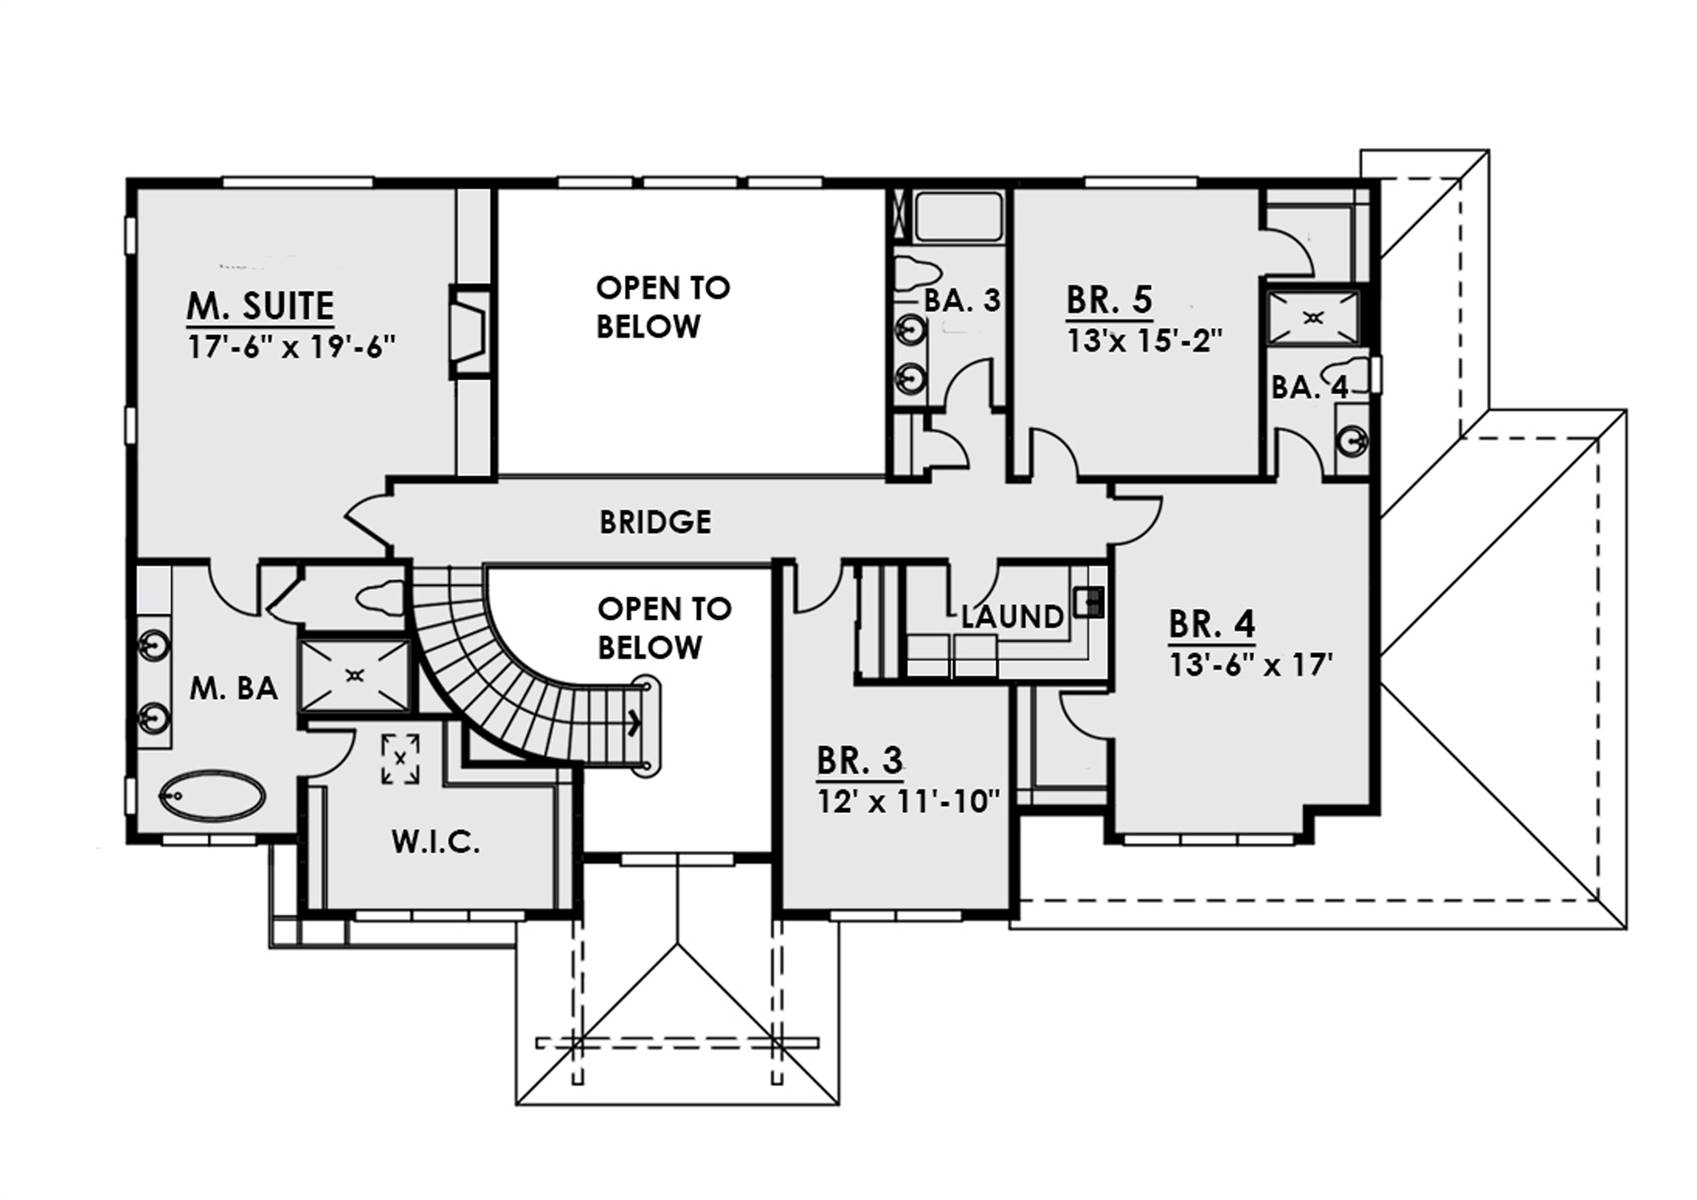 2nd Floor image of Luxury Two Story Contemporary Style House Plan 8766